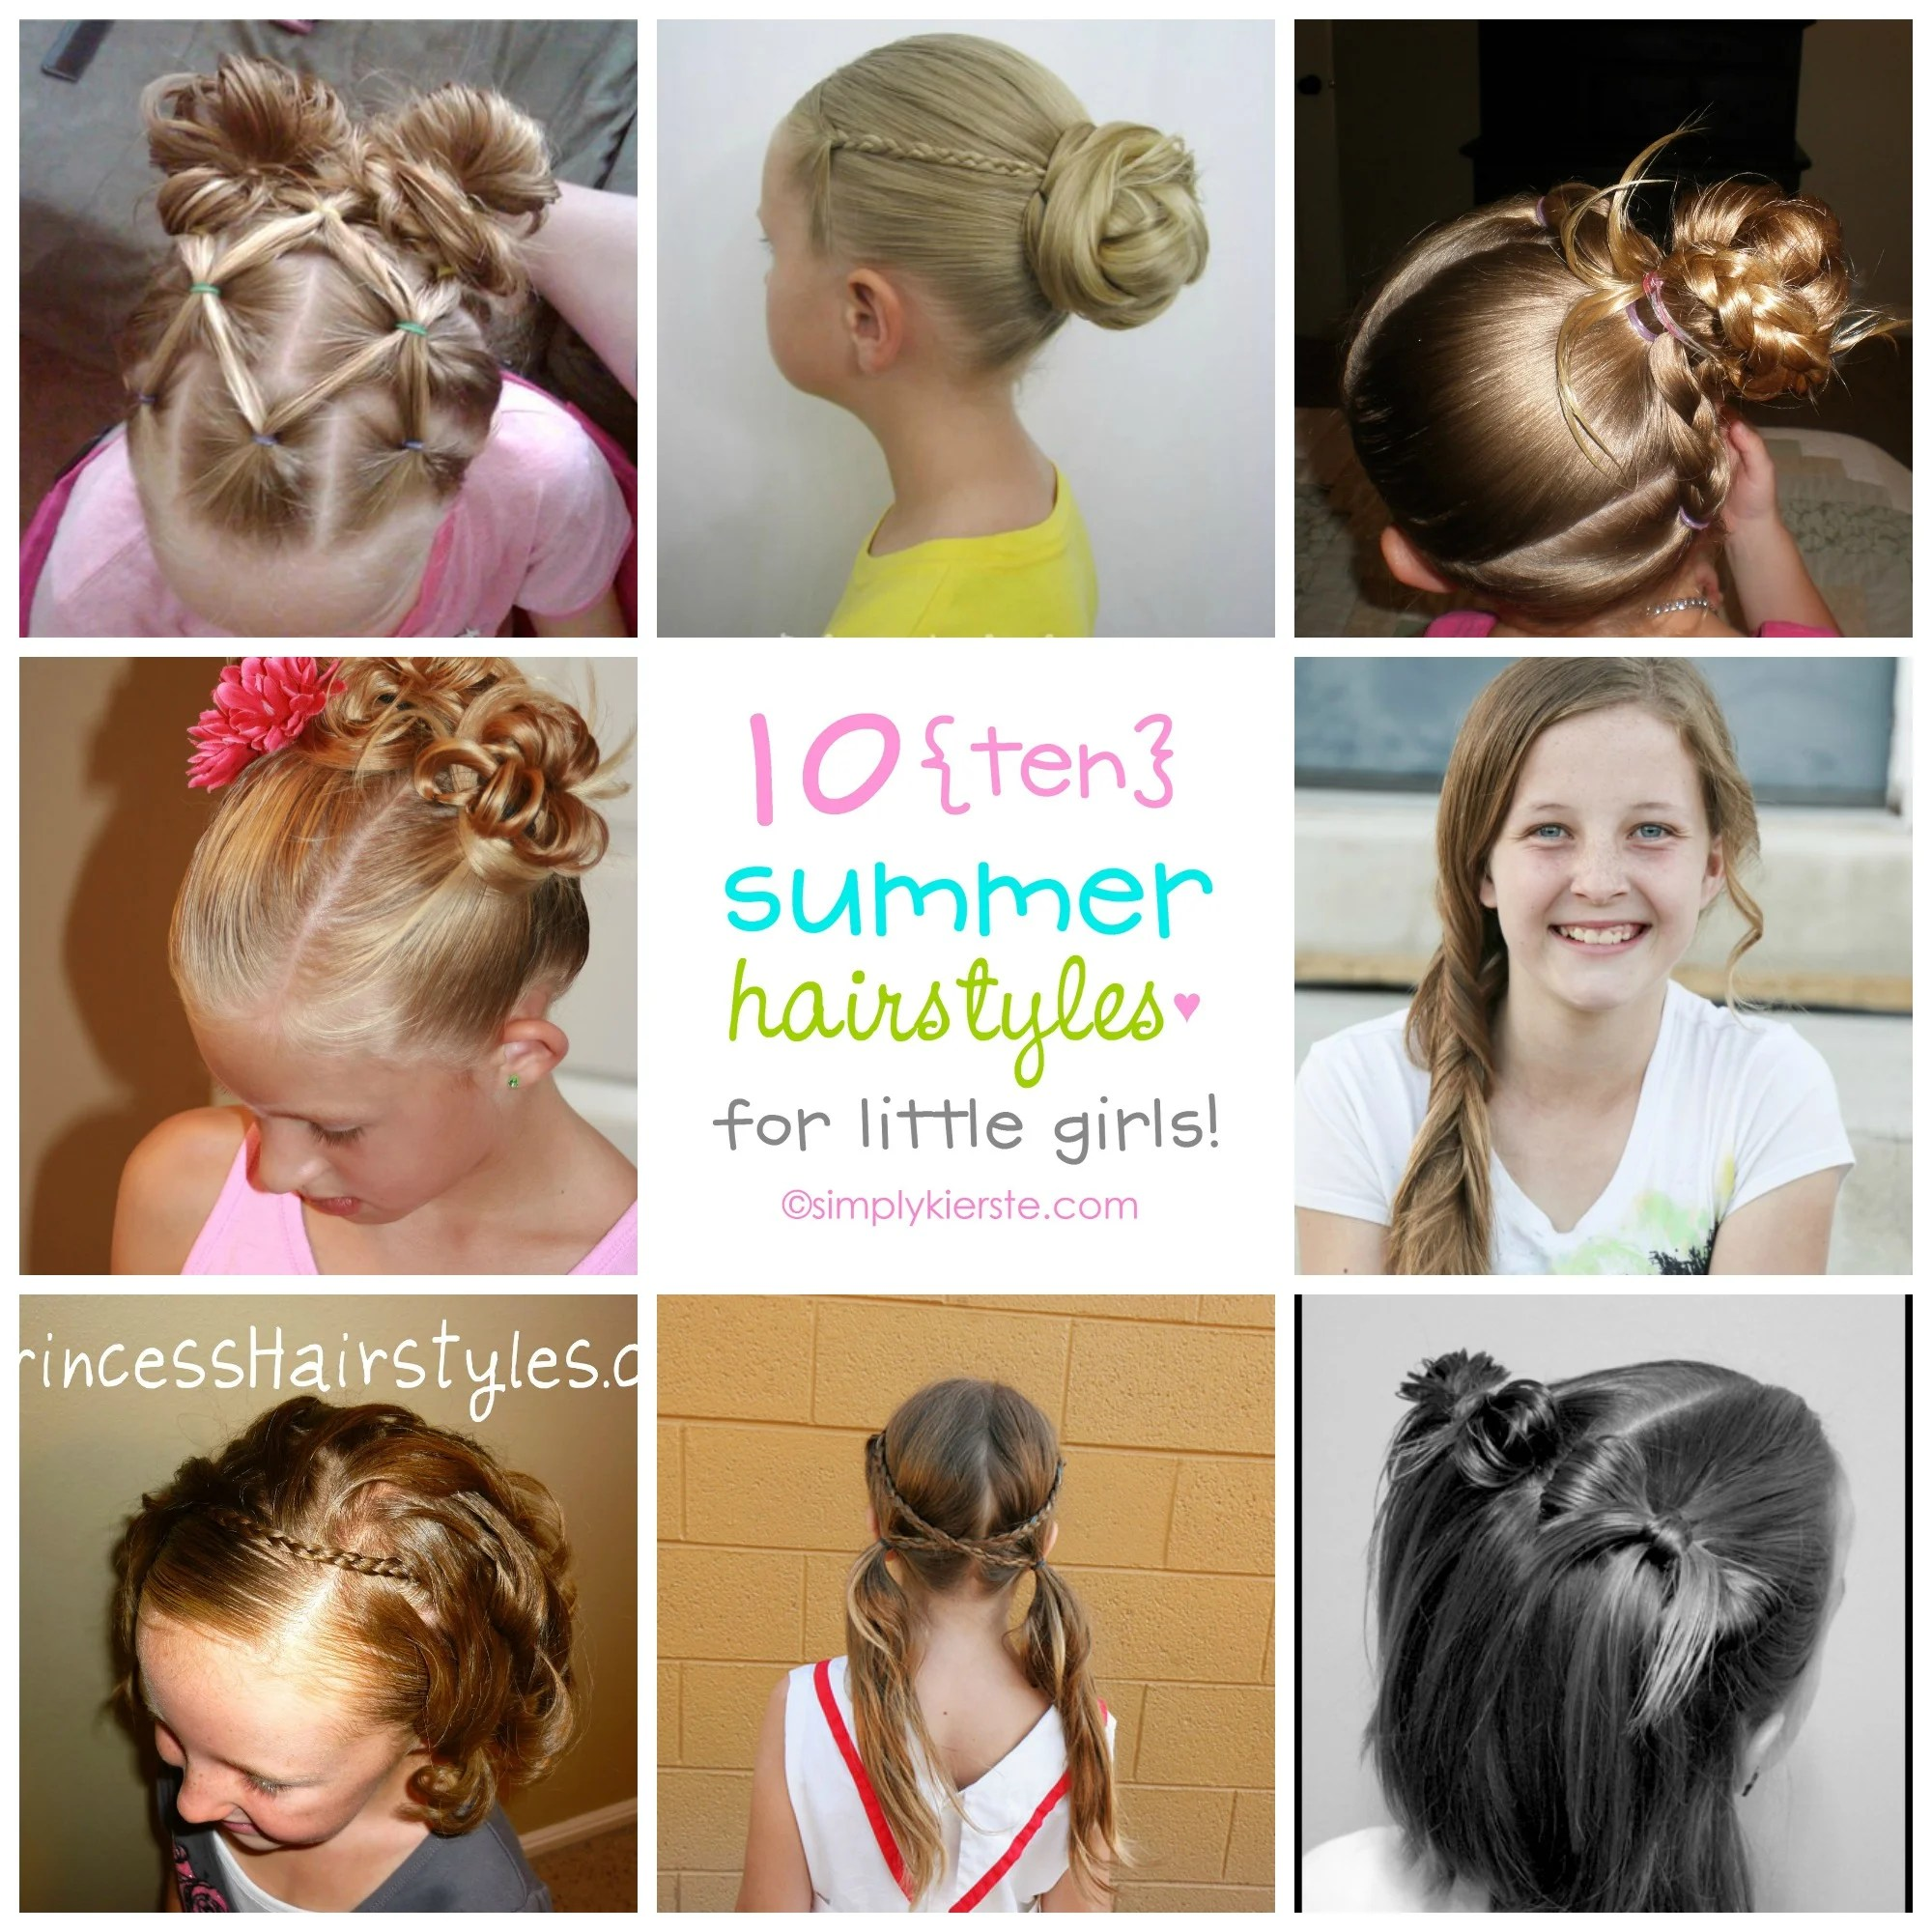 11 Fun Summer Hairstyles for Little Girls  oldsaltfarm.com